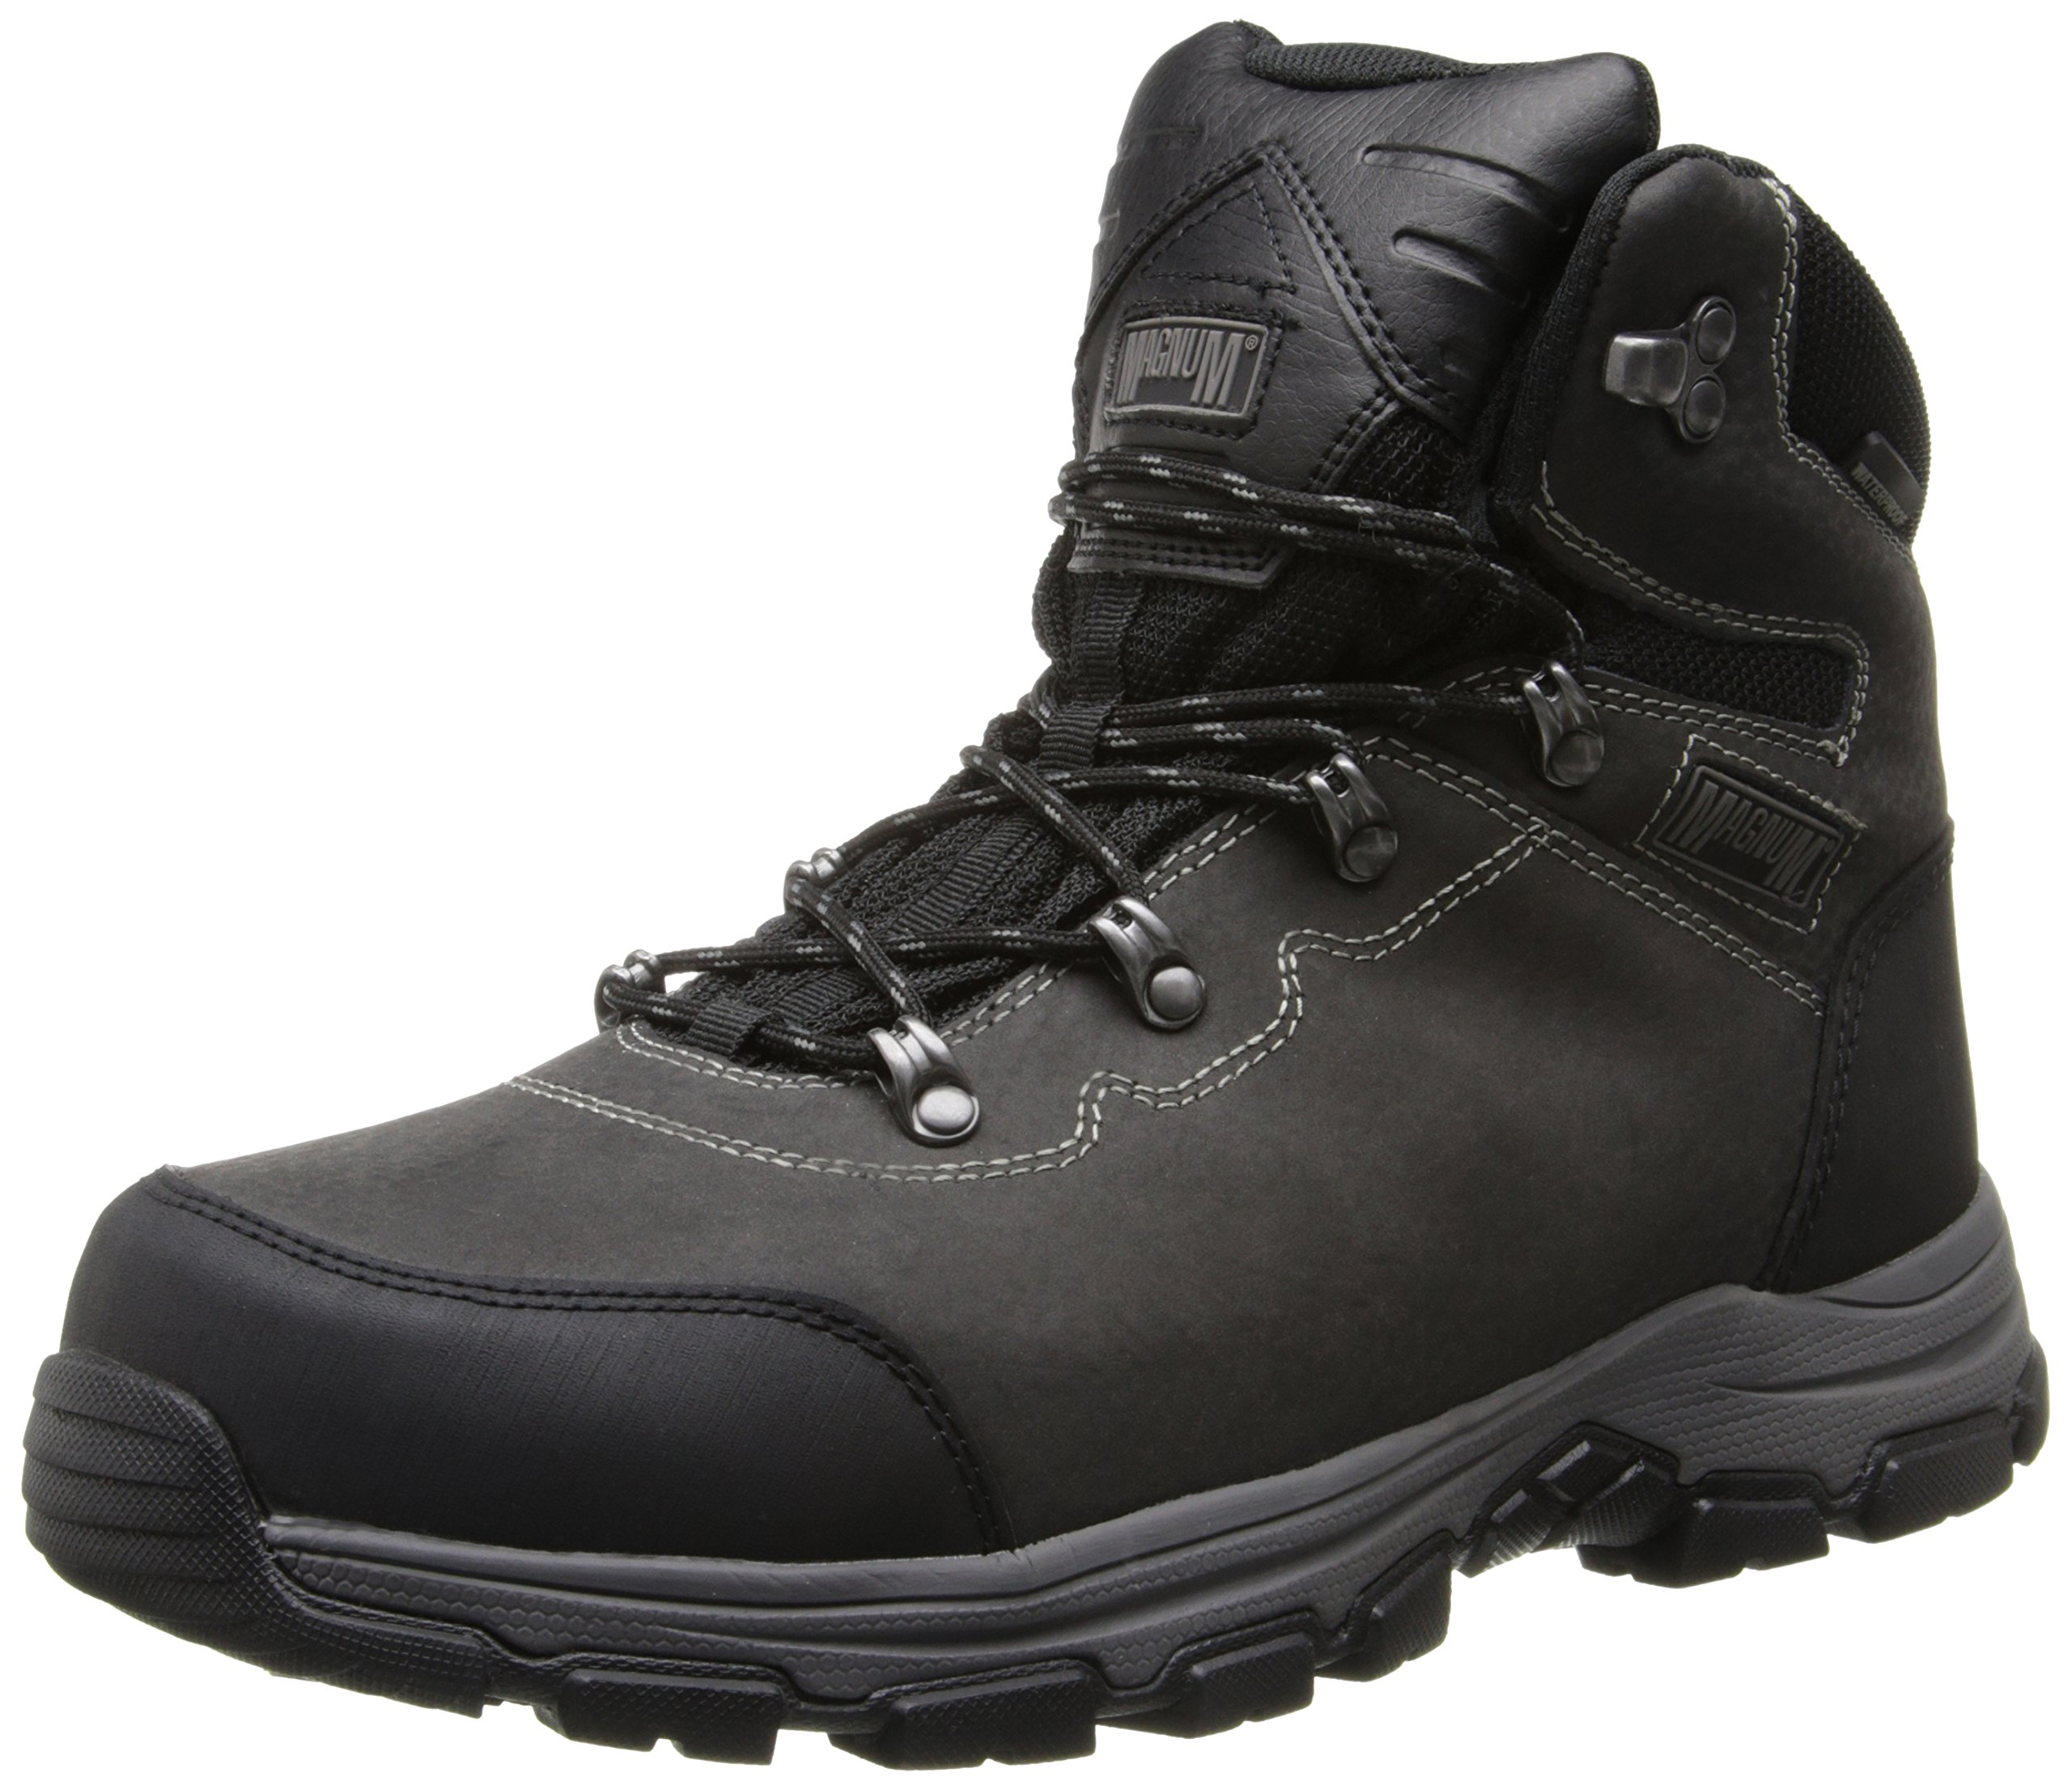 Magnum Men's Austin Mid Steel Toe Waterproof Work Boot, Charcoal, 11 M US by Magnum